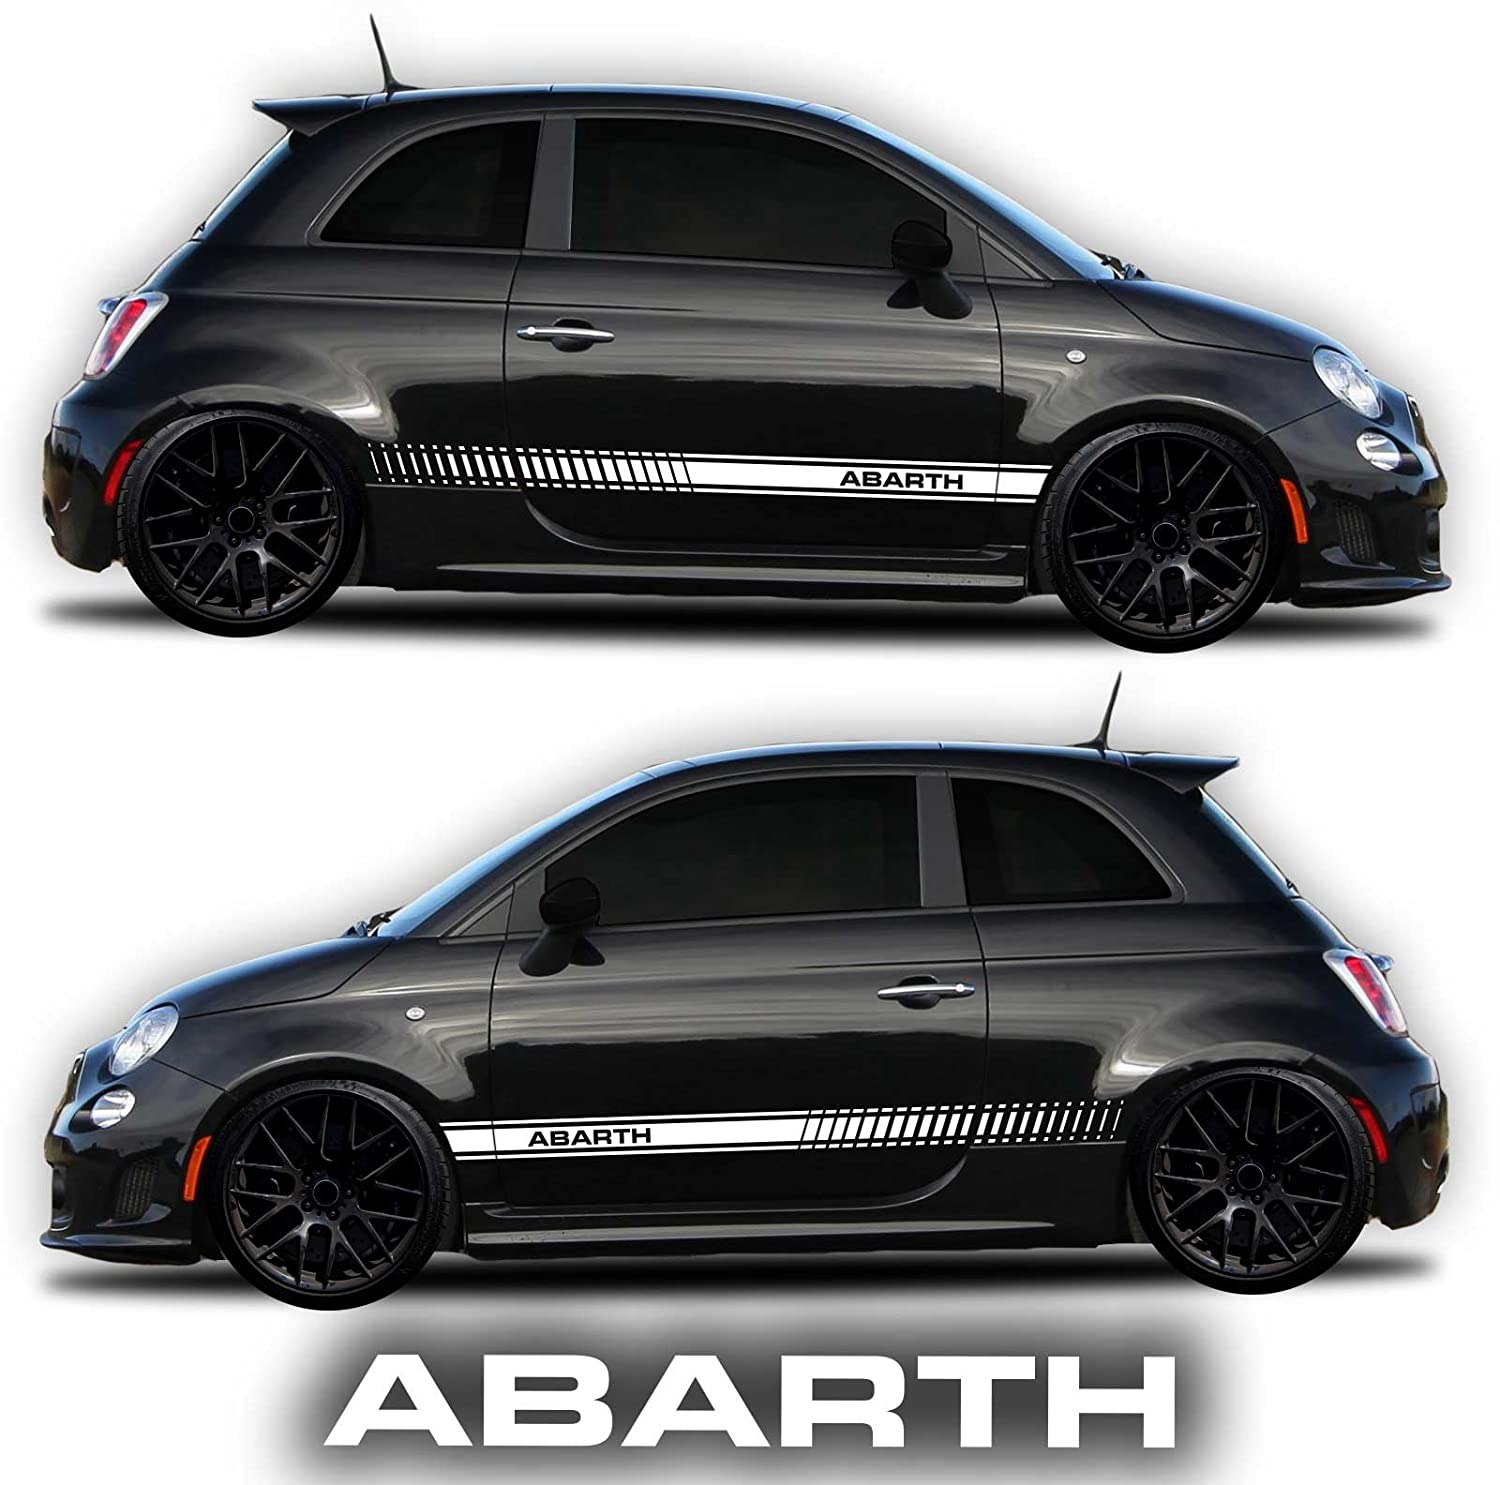 fiat youtube arbath tv test drive abarth watch pov modified nero wr